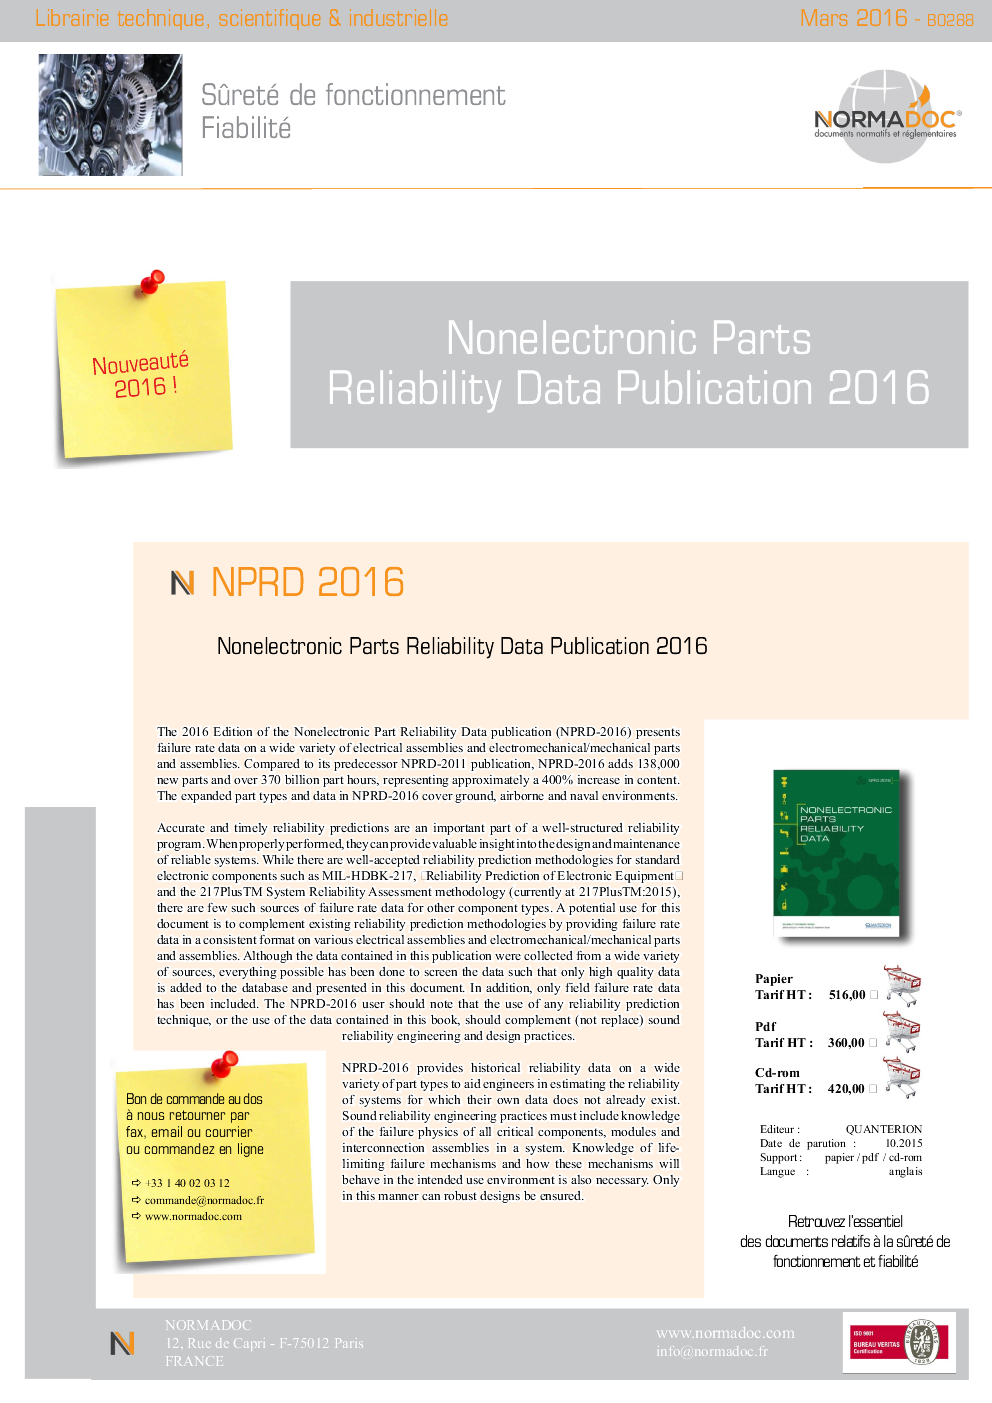 Nonelectronic Parts Reliability Data Publication 2016